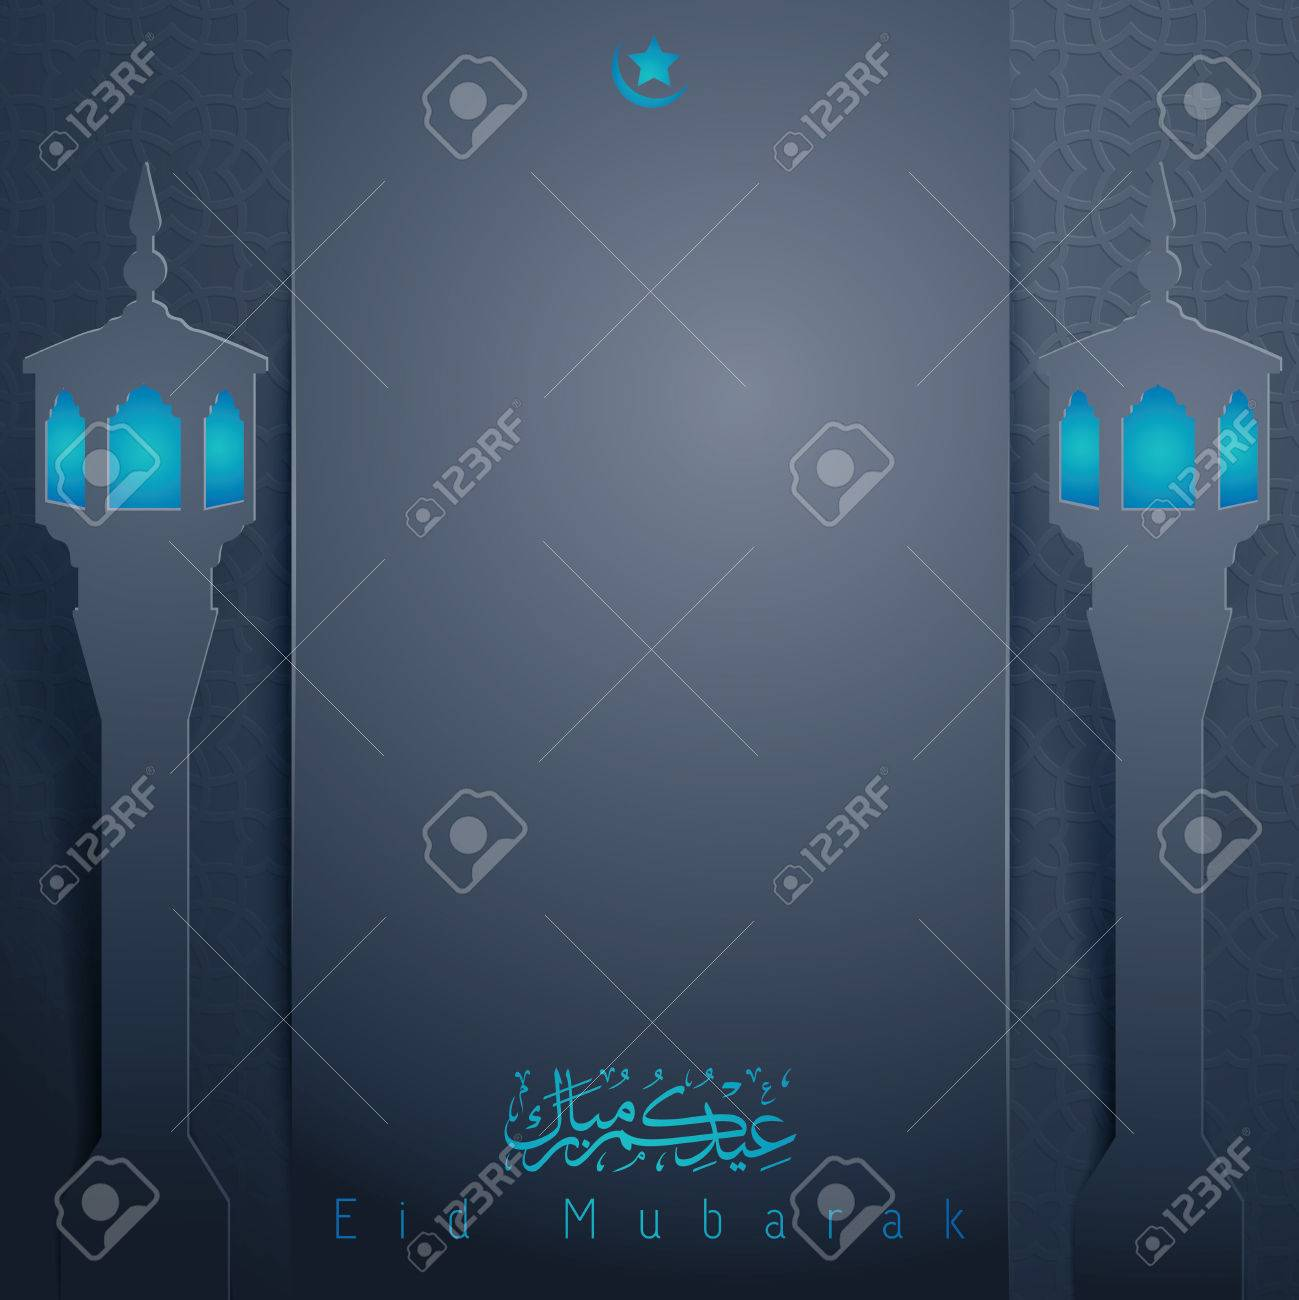 Eid Mubarak Arabic Lamp Greeting Background Royalty Free Cliparts